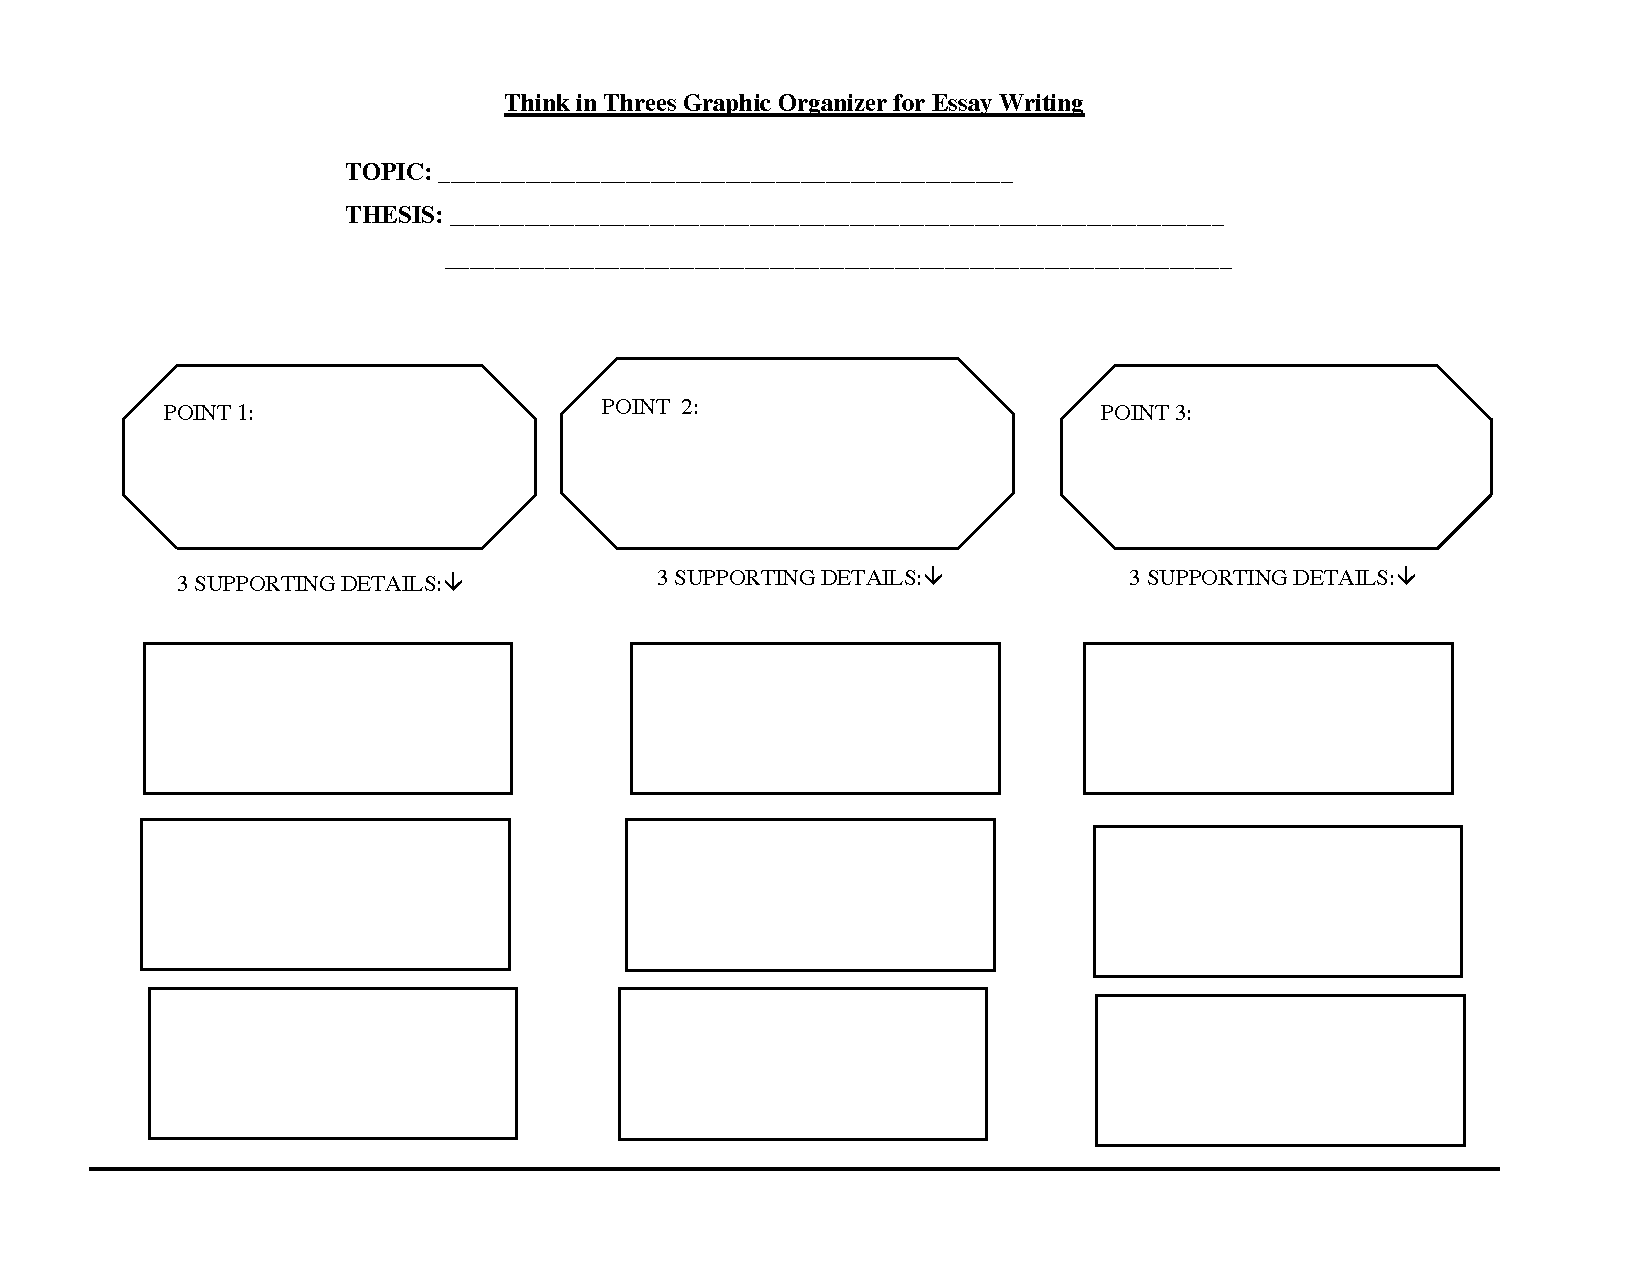 Friendly Letter - Graphic Organizer/Prewriting